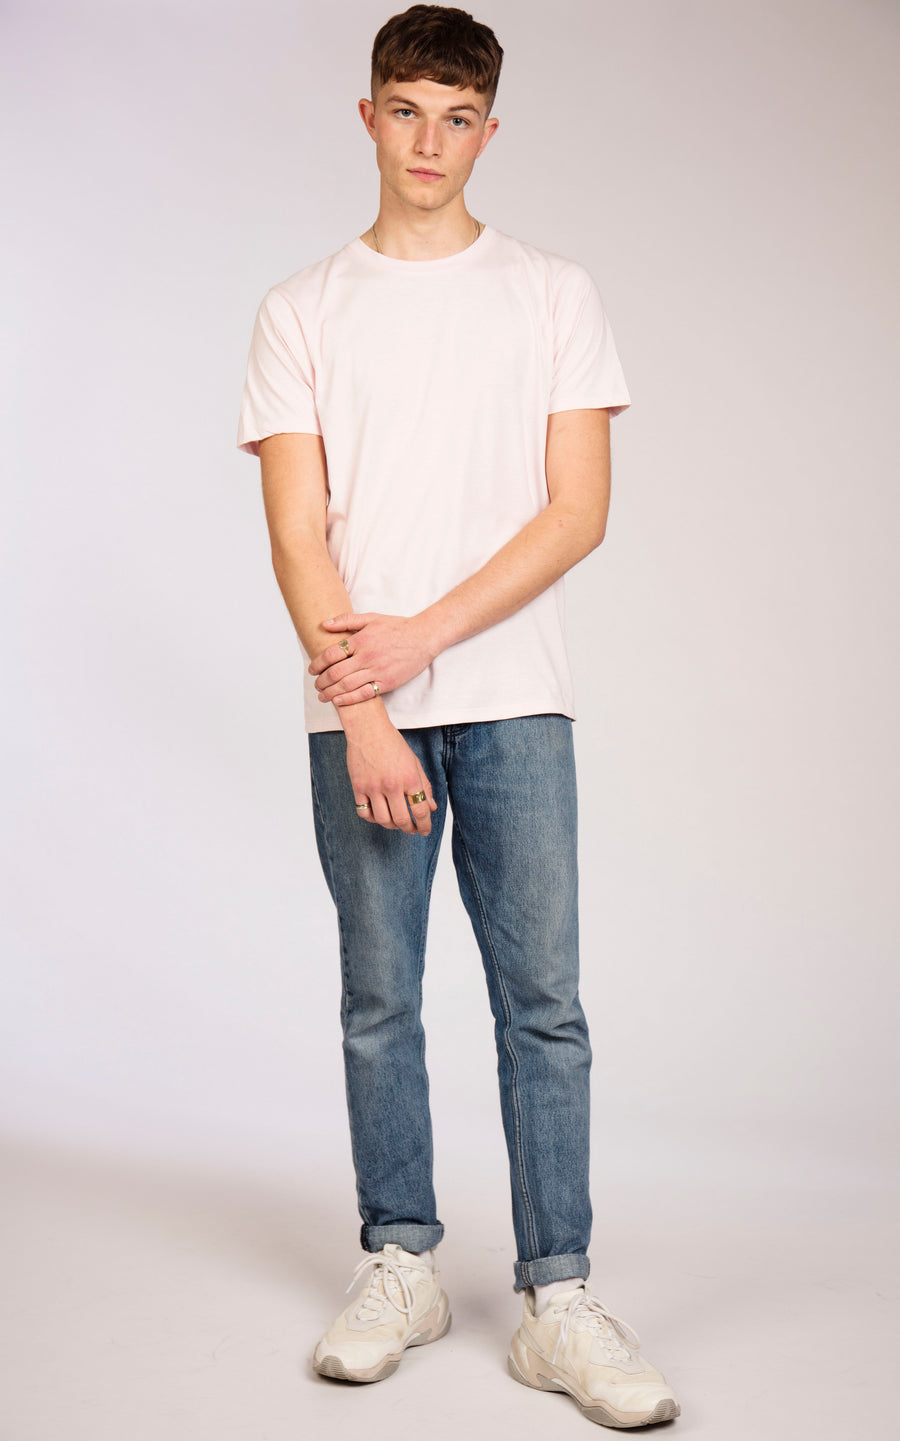 Men's Plain White Organic Cotton T-Shirt